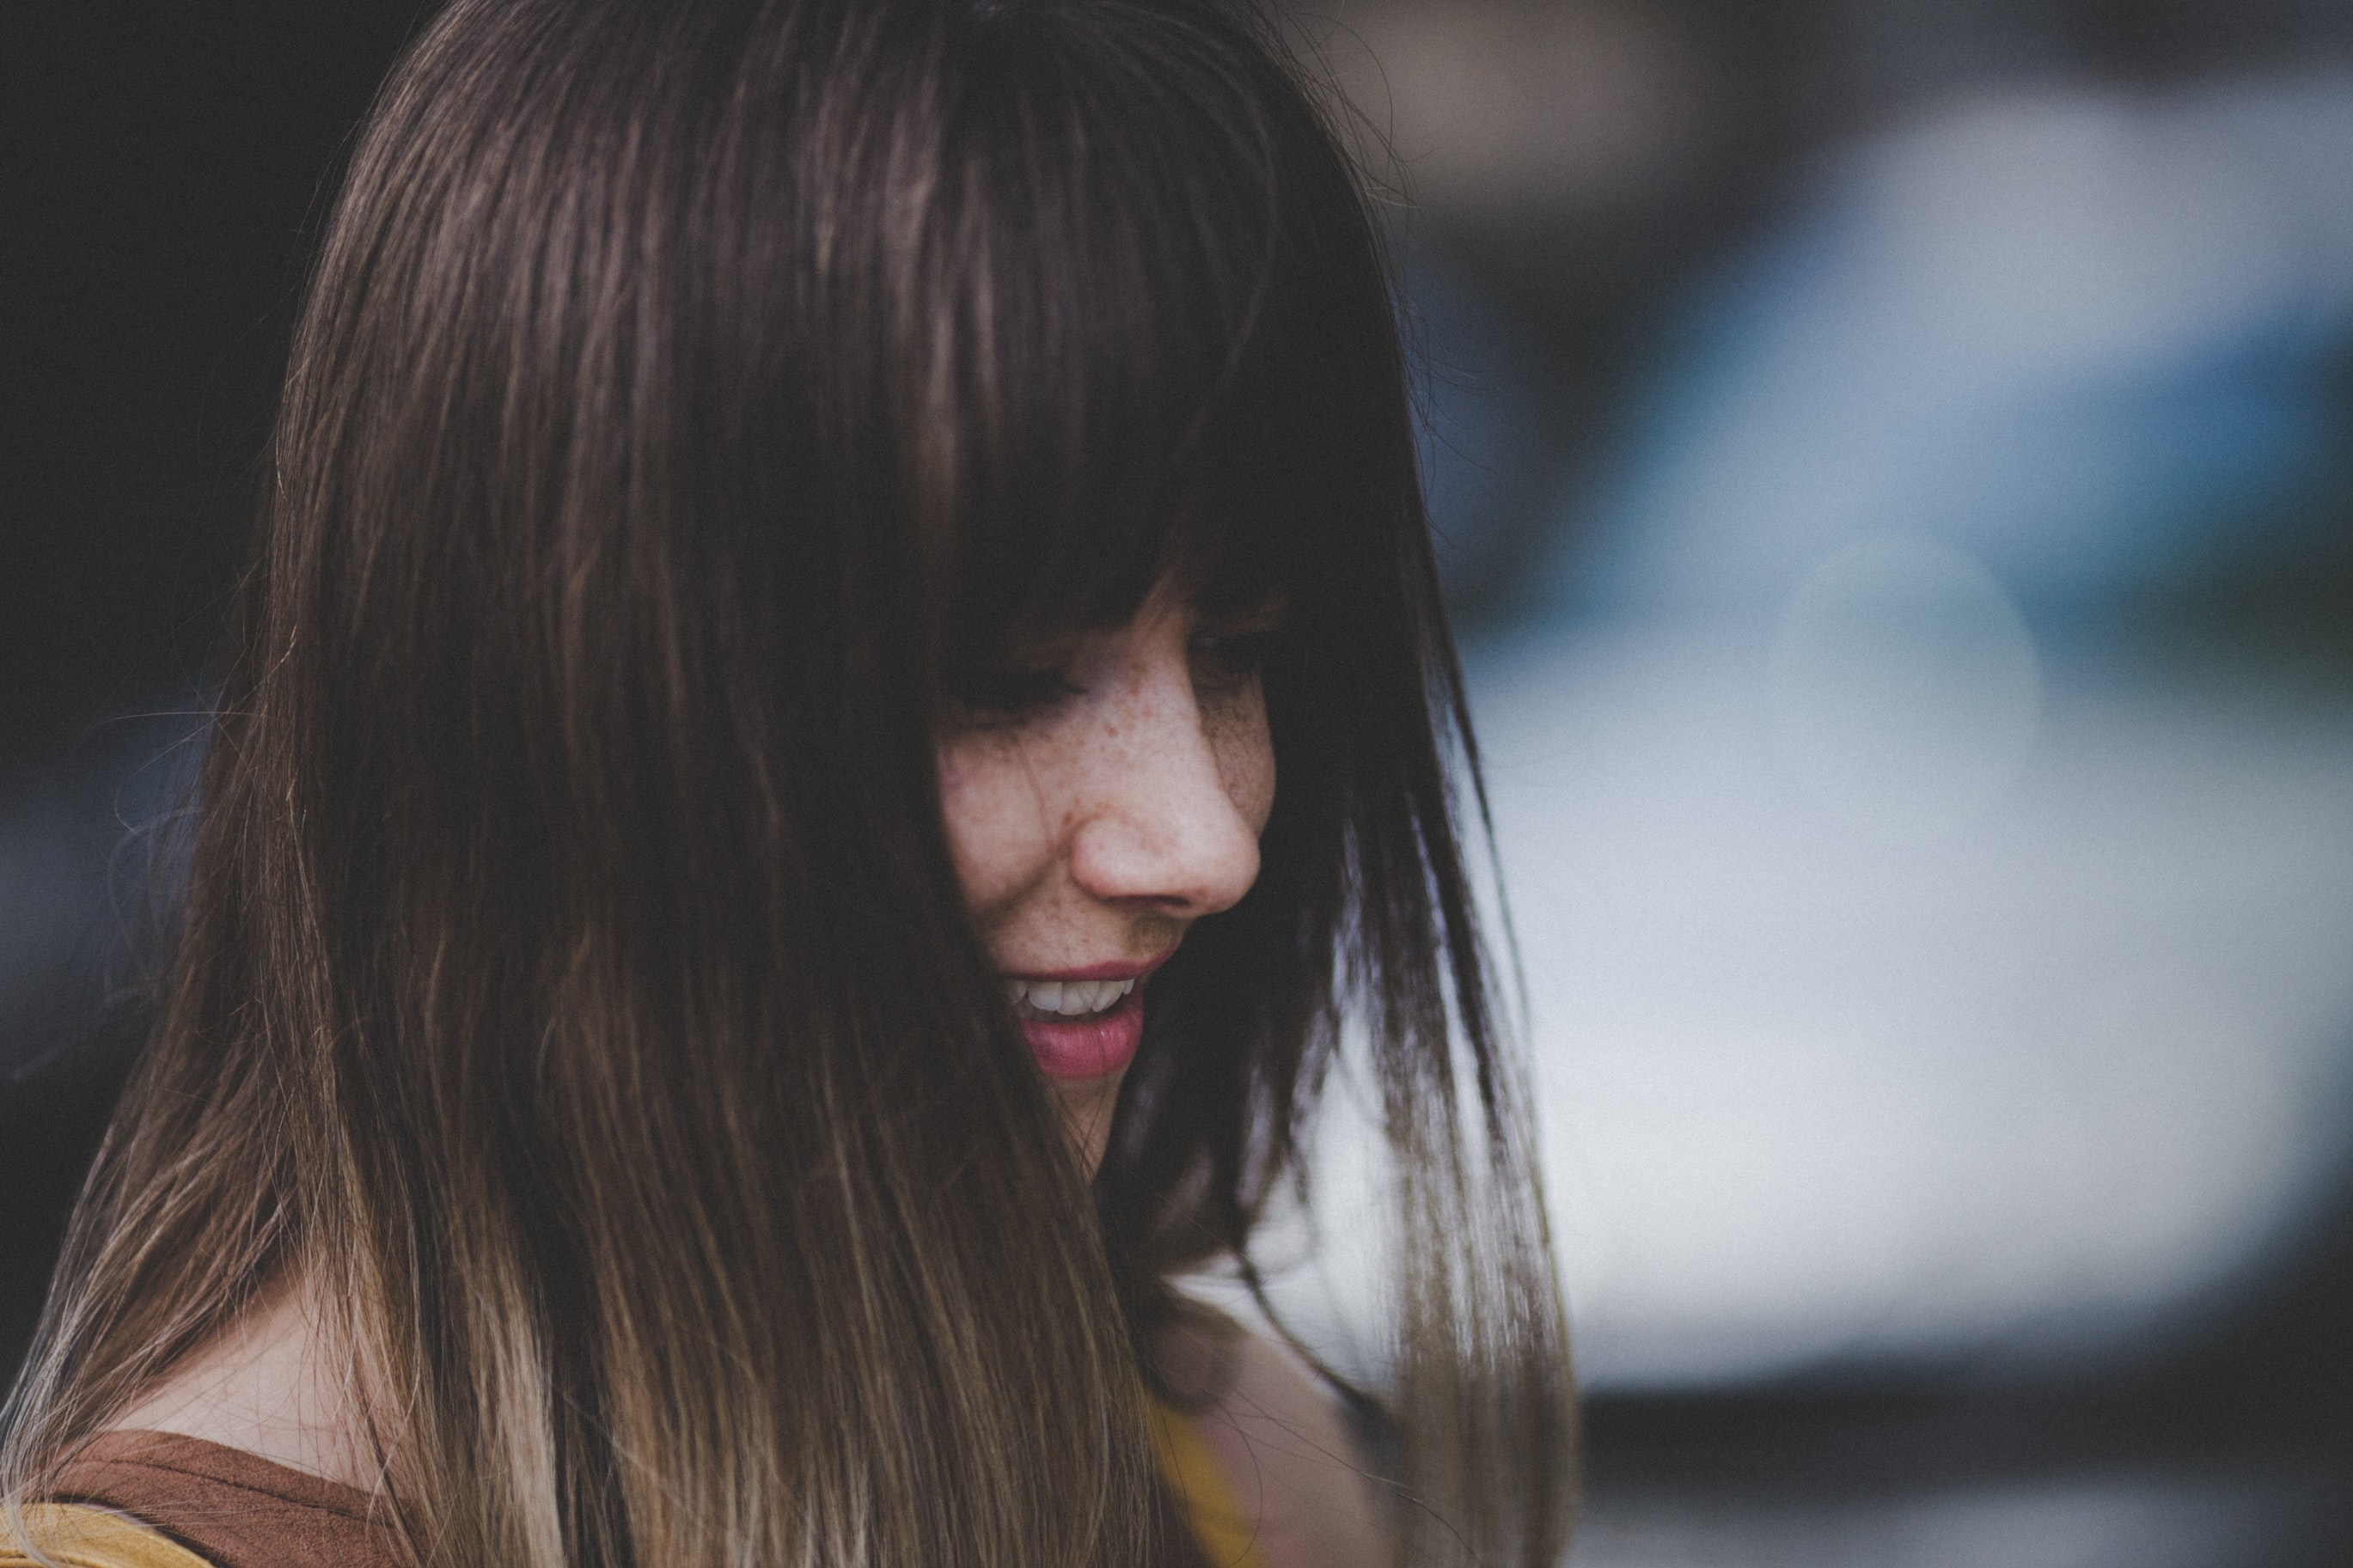 A woman with long brown hair and bangs smiles while looking downward against a blurry background